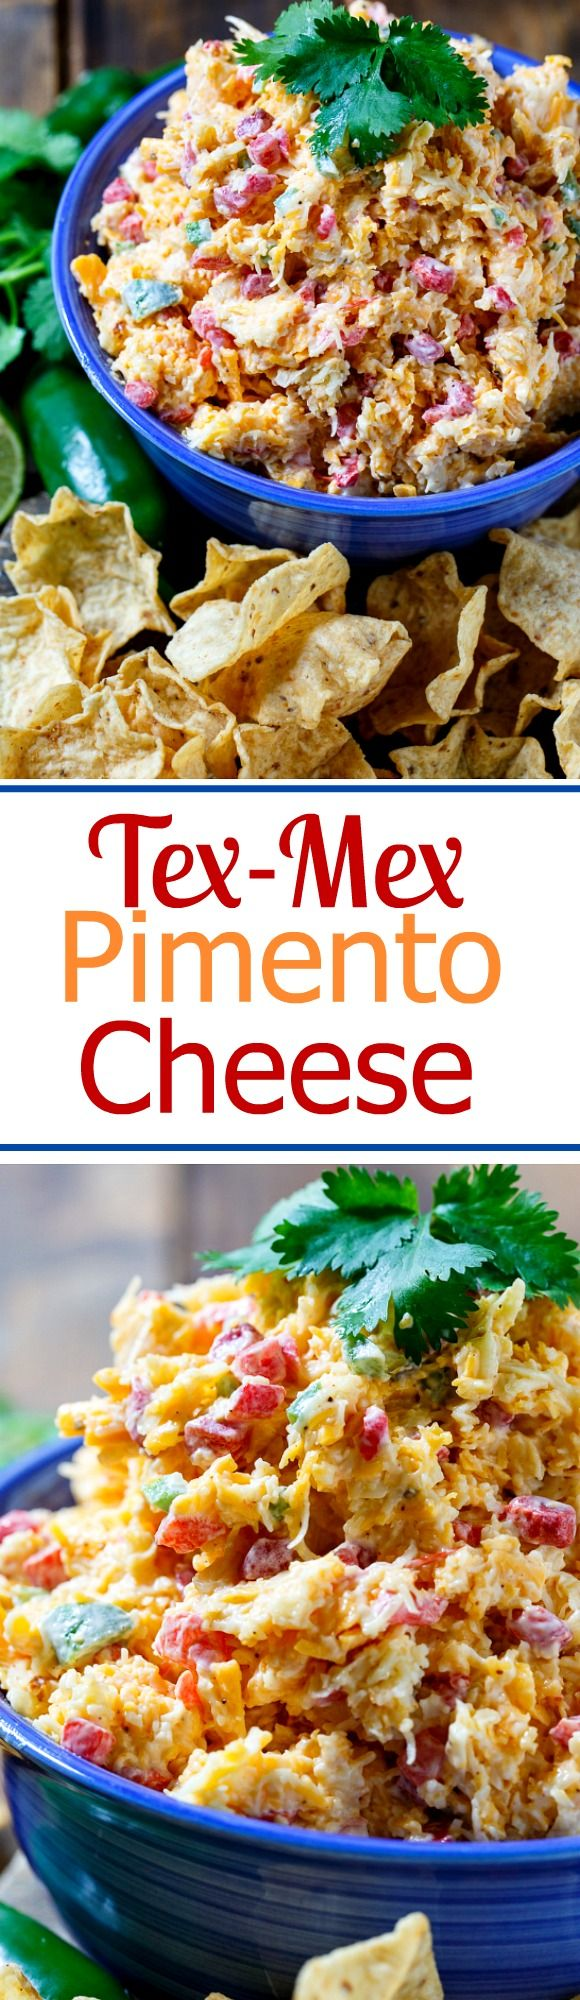 Tex-Mex Pimento Cheese is a fun twist on traditional pimento cheese. Great for summer entertaining!